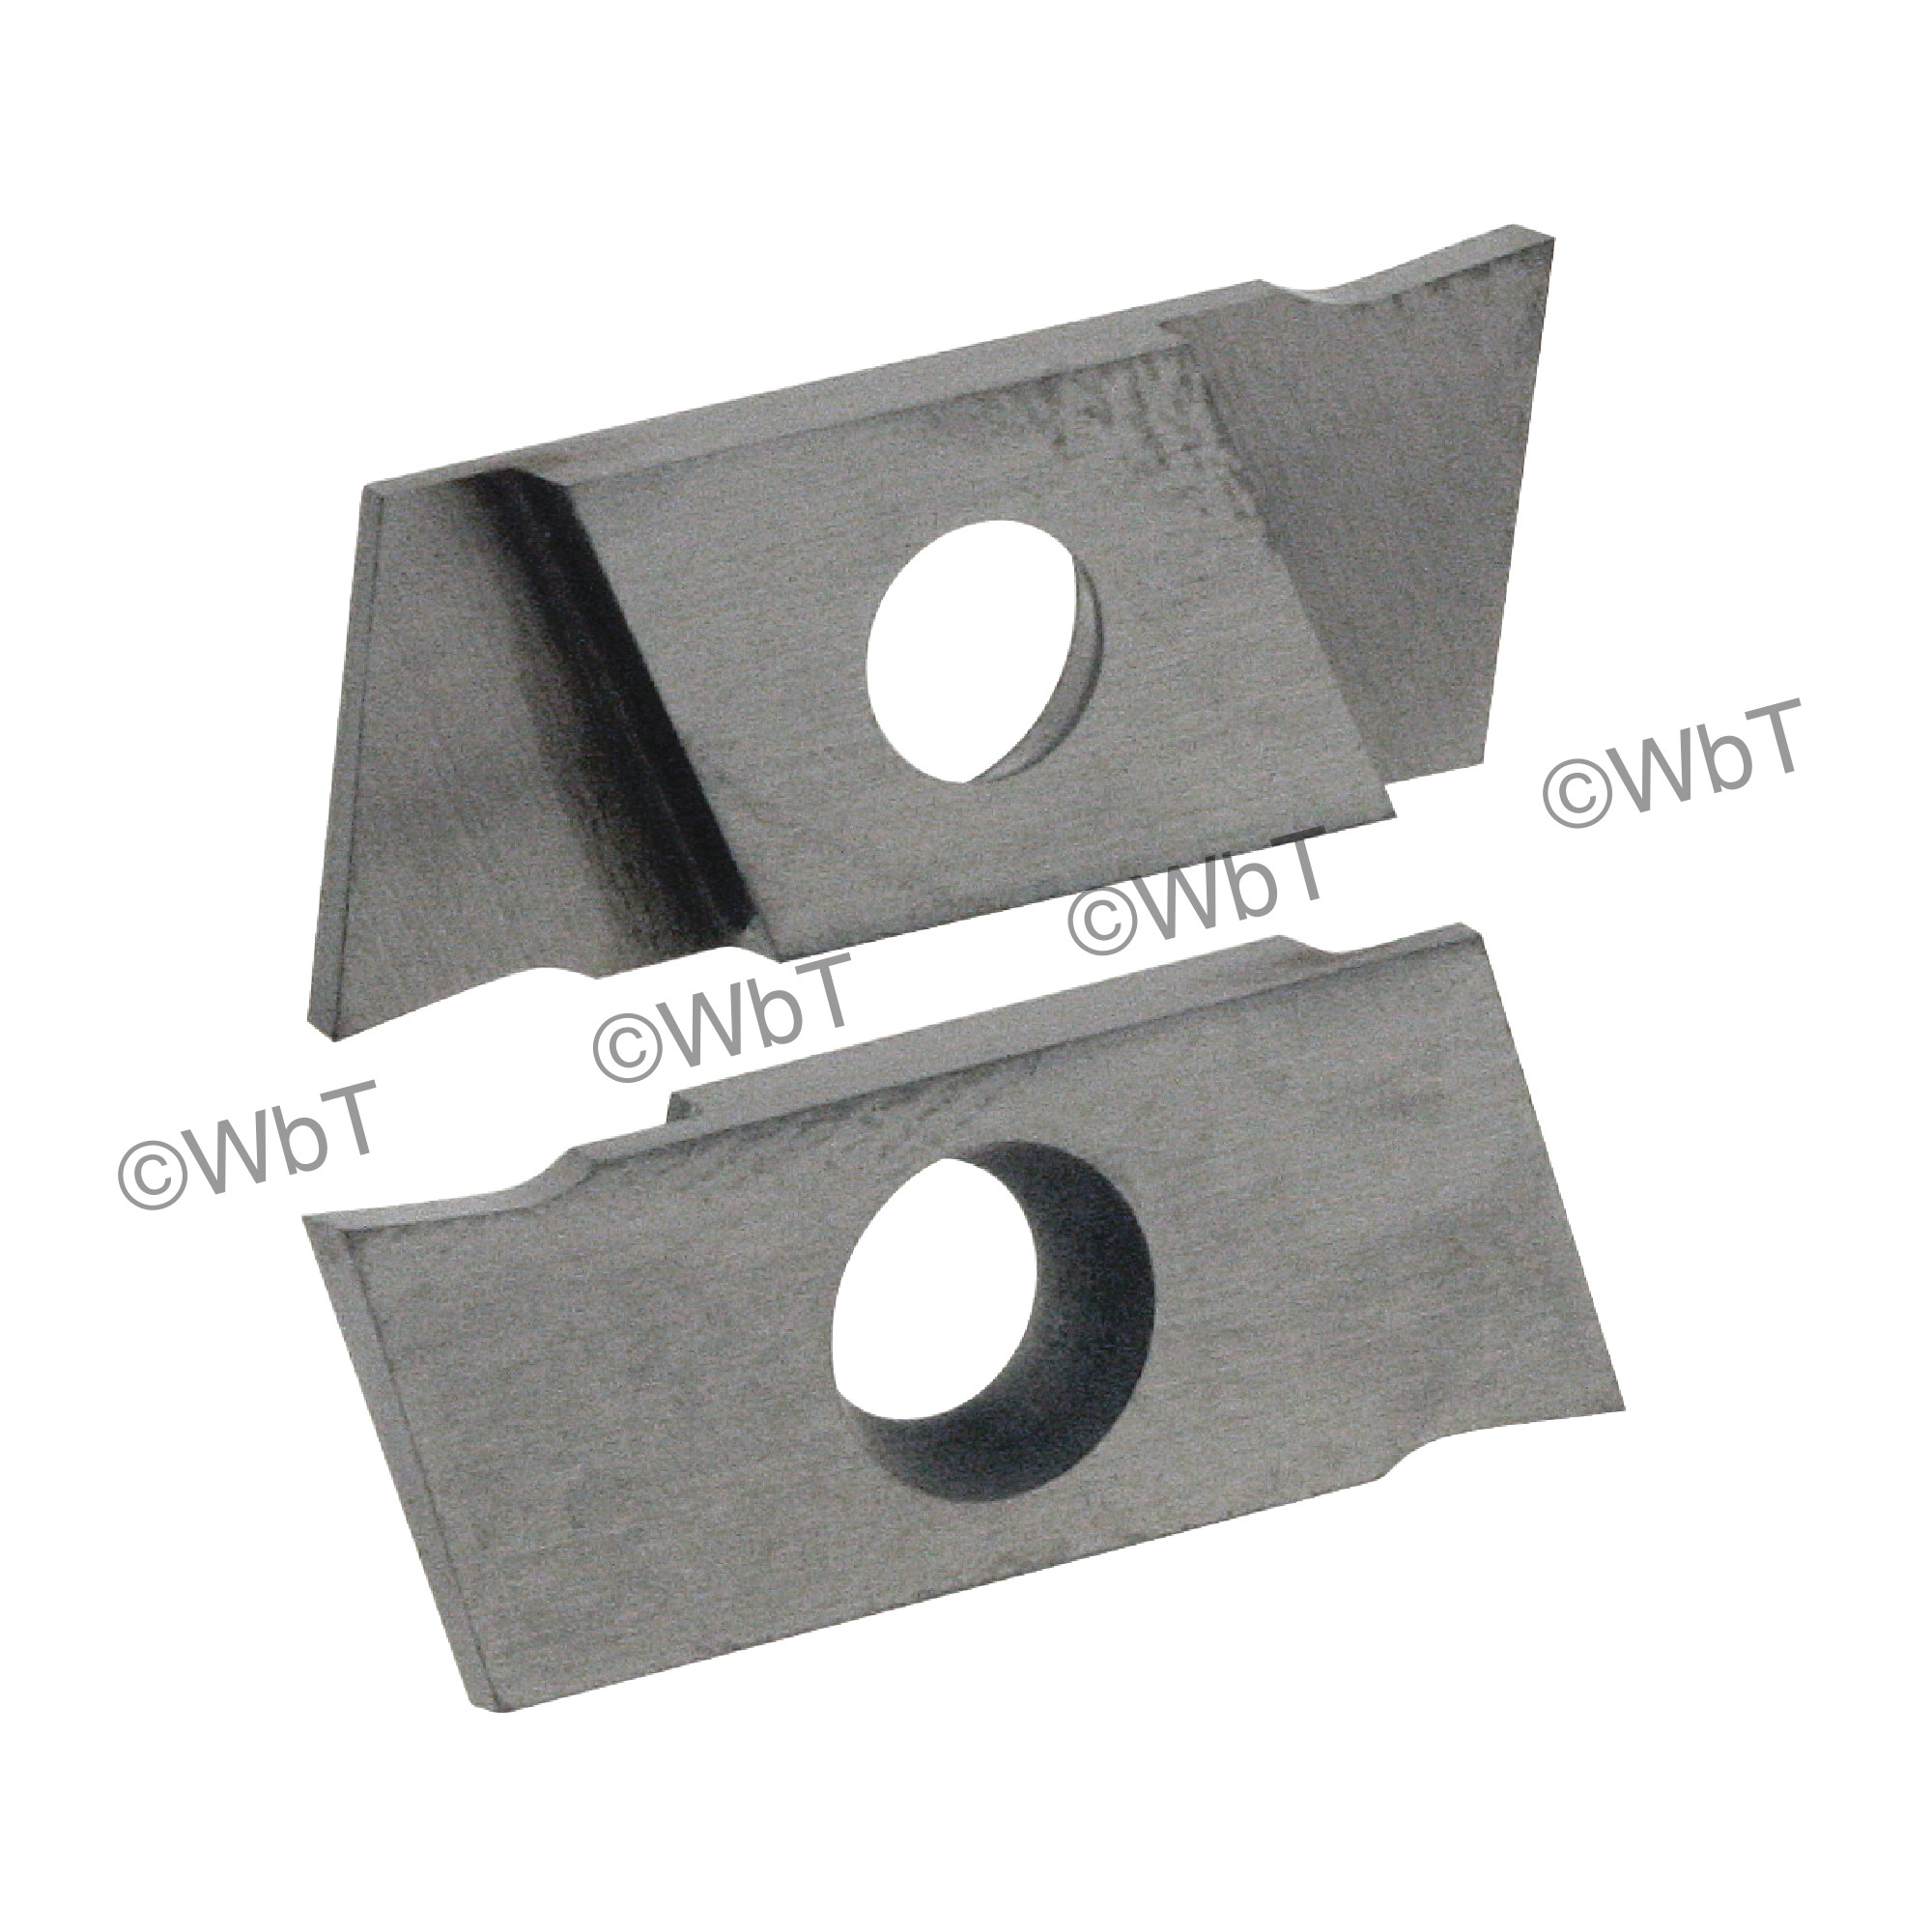 """NIKCOLE - GIE-7-GP-1.0RR C2 / Indexable Carbide Insert for Grooving / 0.039"""" Cutting Width / Right Hand"""